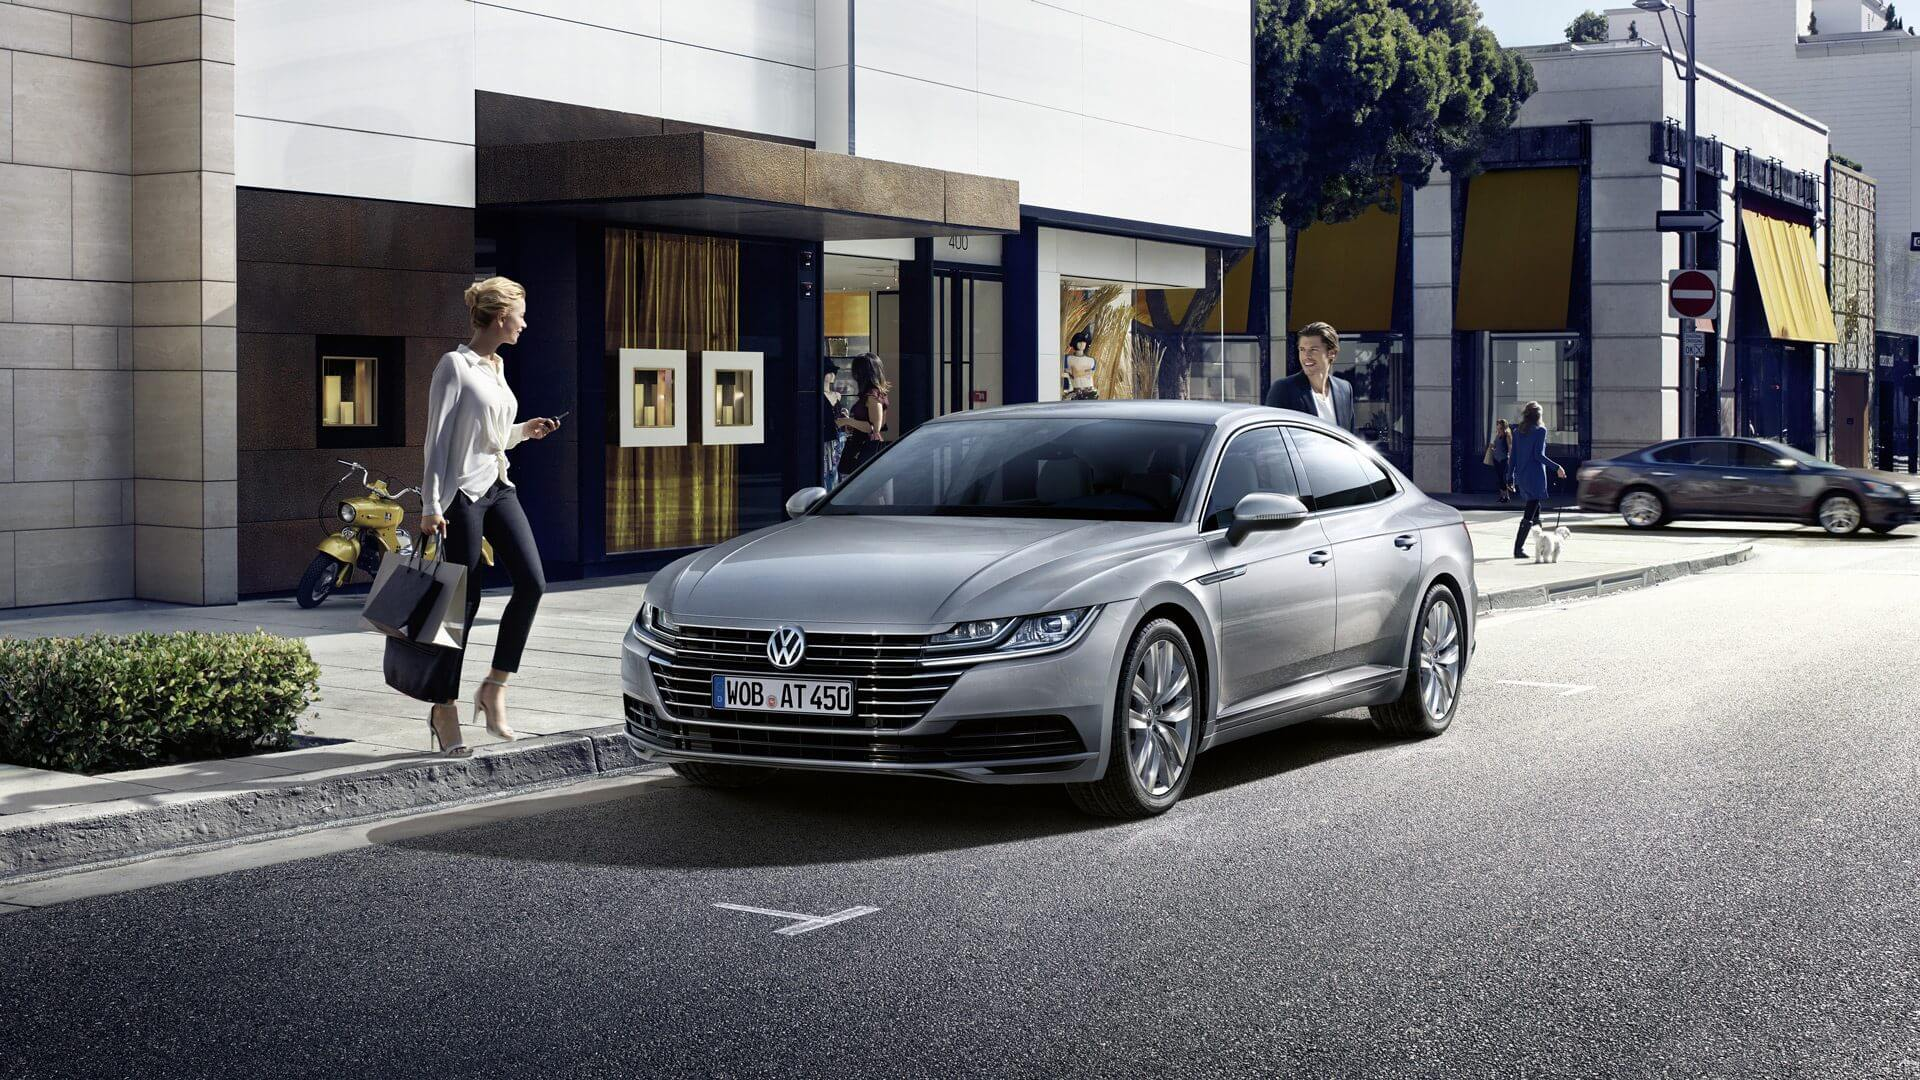 hot vw arteon 2 0 tdi leasing f r 100 euro im monat. Black Bedroom Furniture Sets. Home Design Ideas